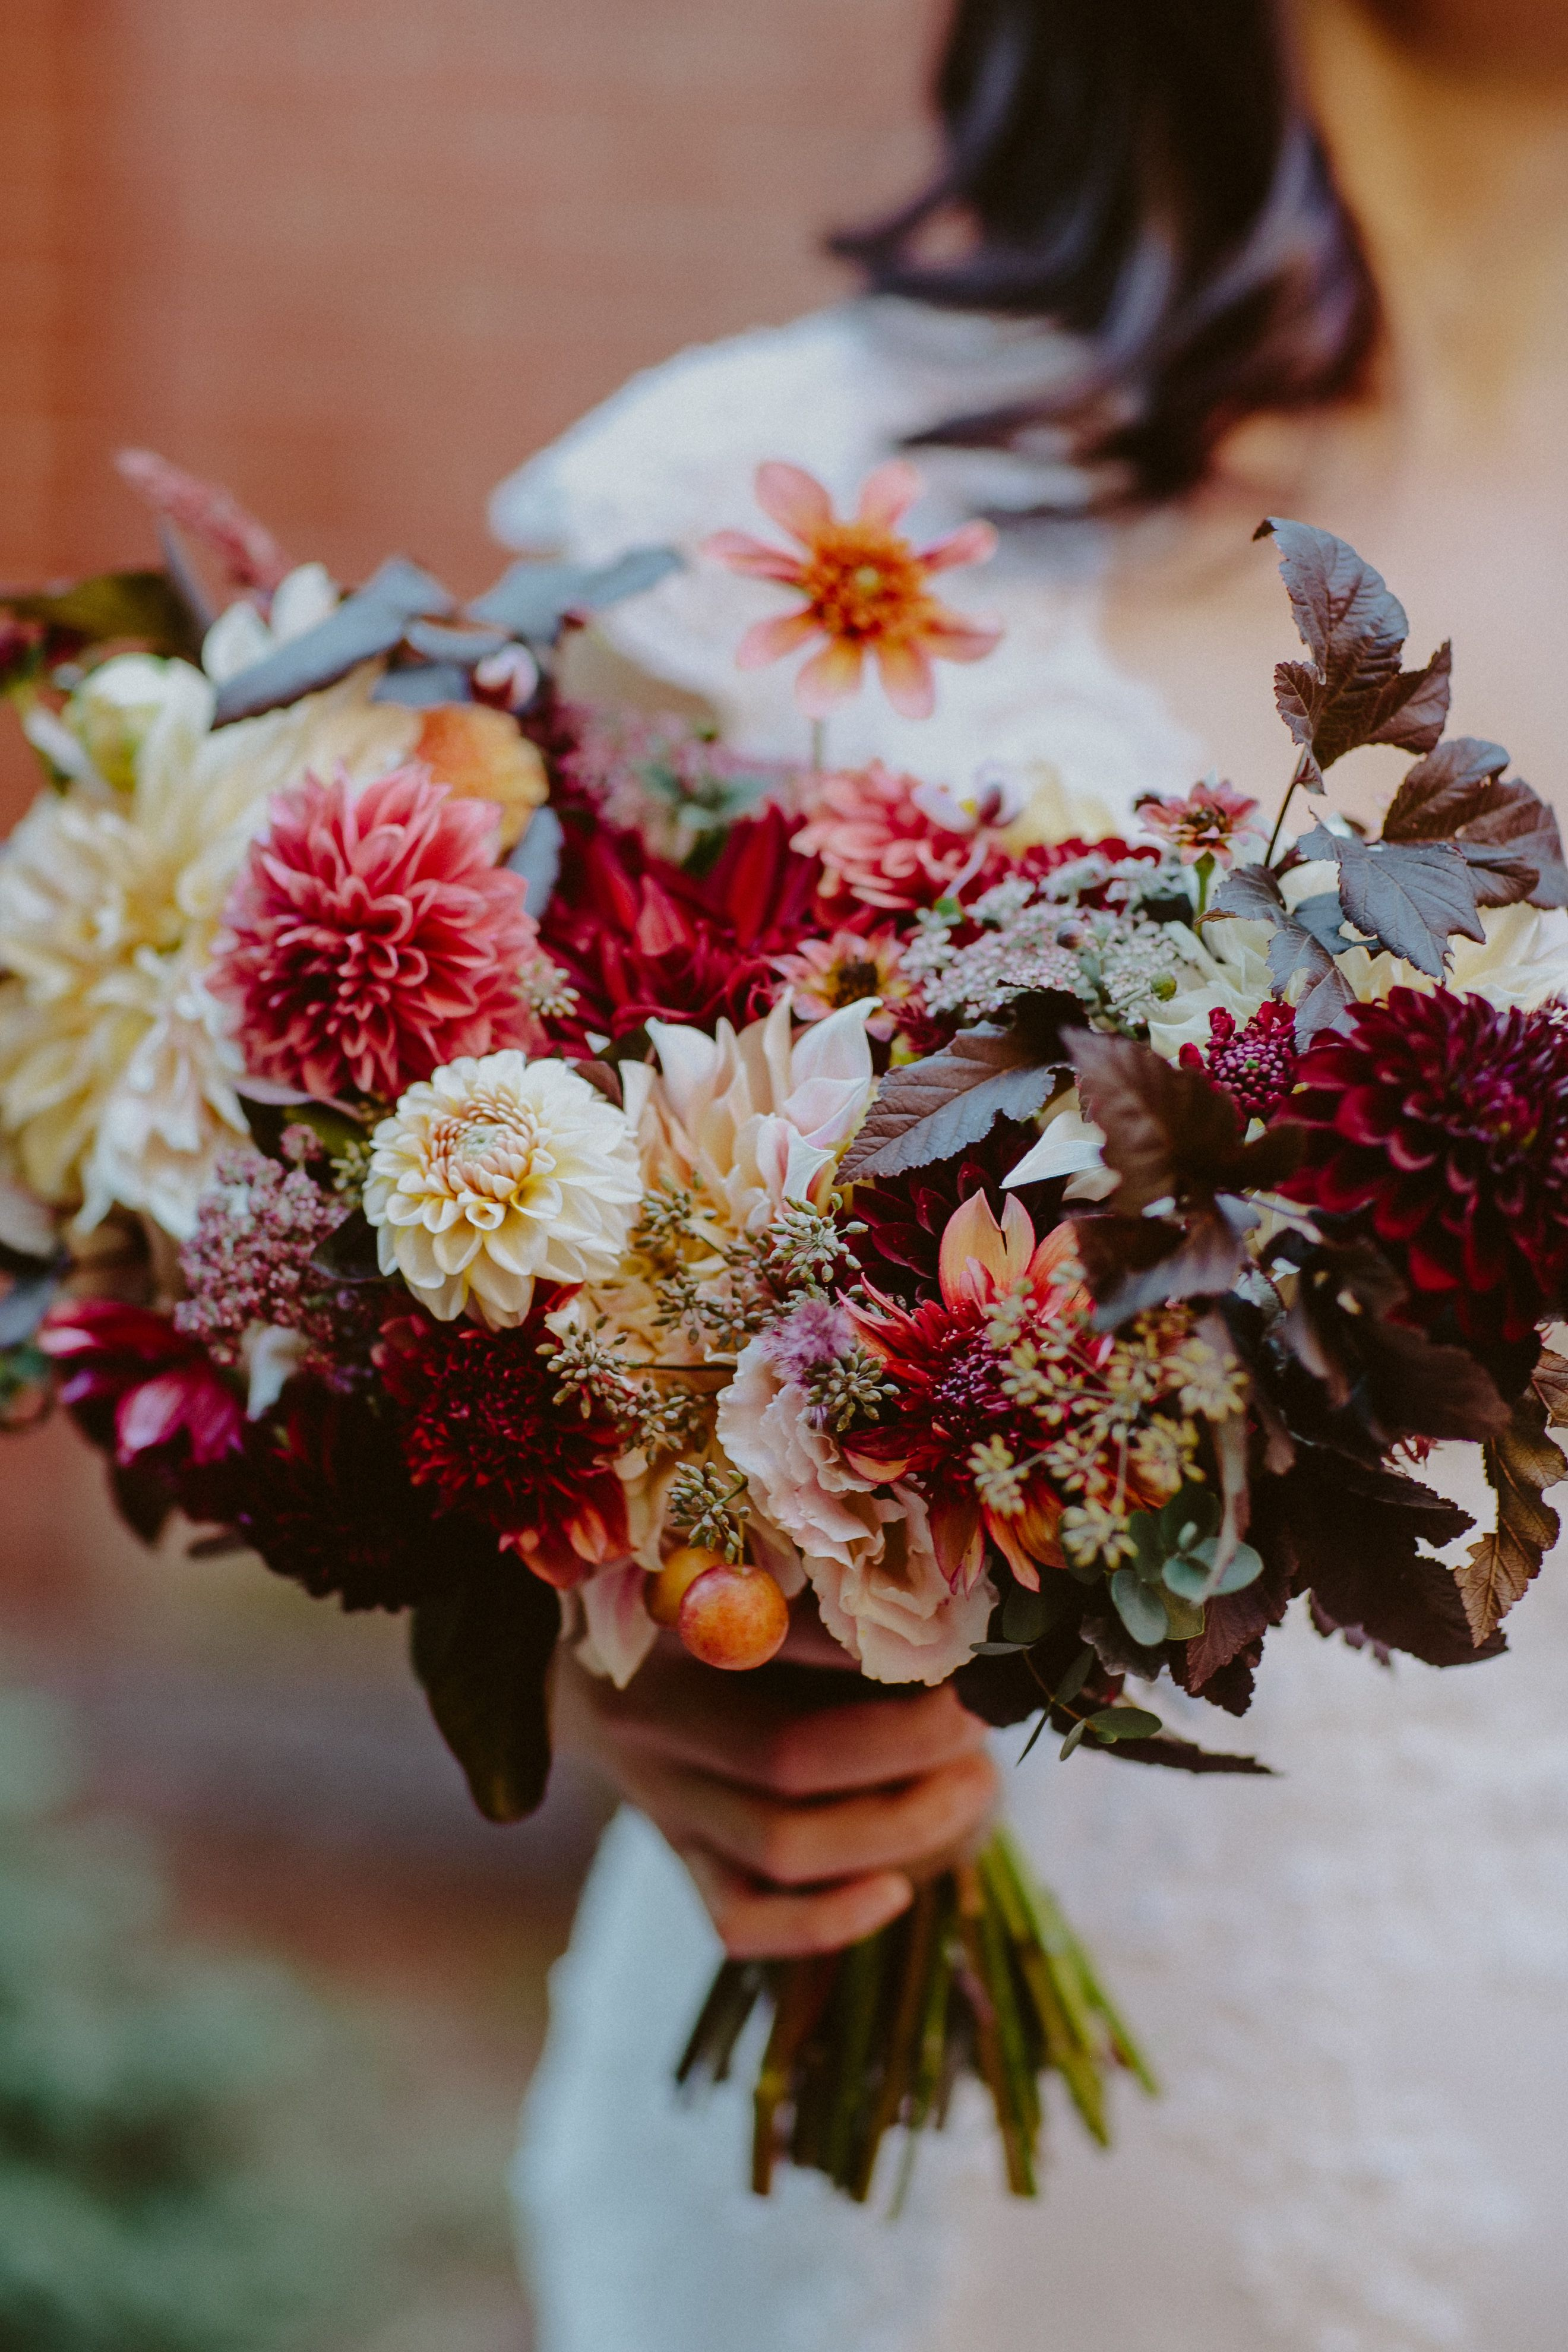 Autumn bridal bouquet in garnet, peach, and burgundy hues. Dahlias and herbs. Grown and designed by Love 'n Fresh Flowers. Photo by Storytellers & Co.